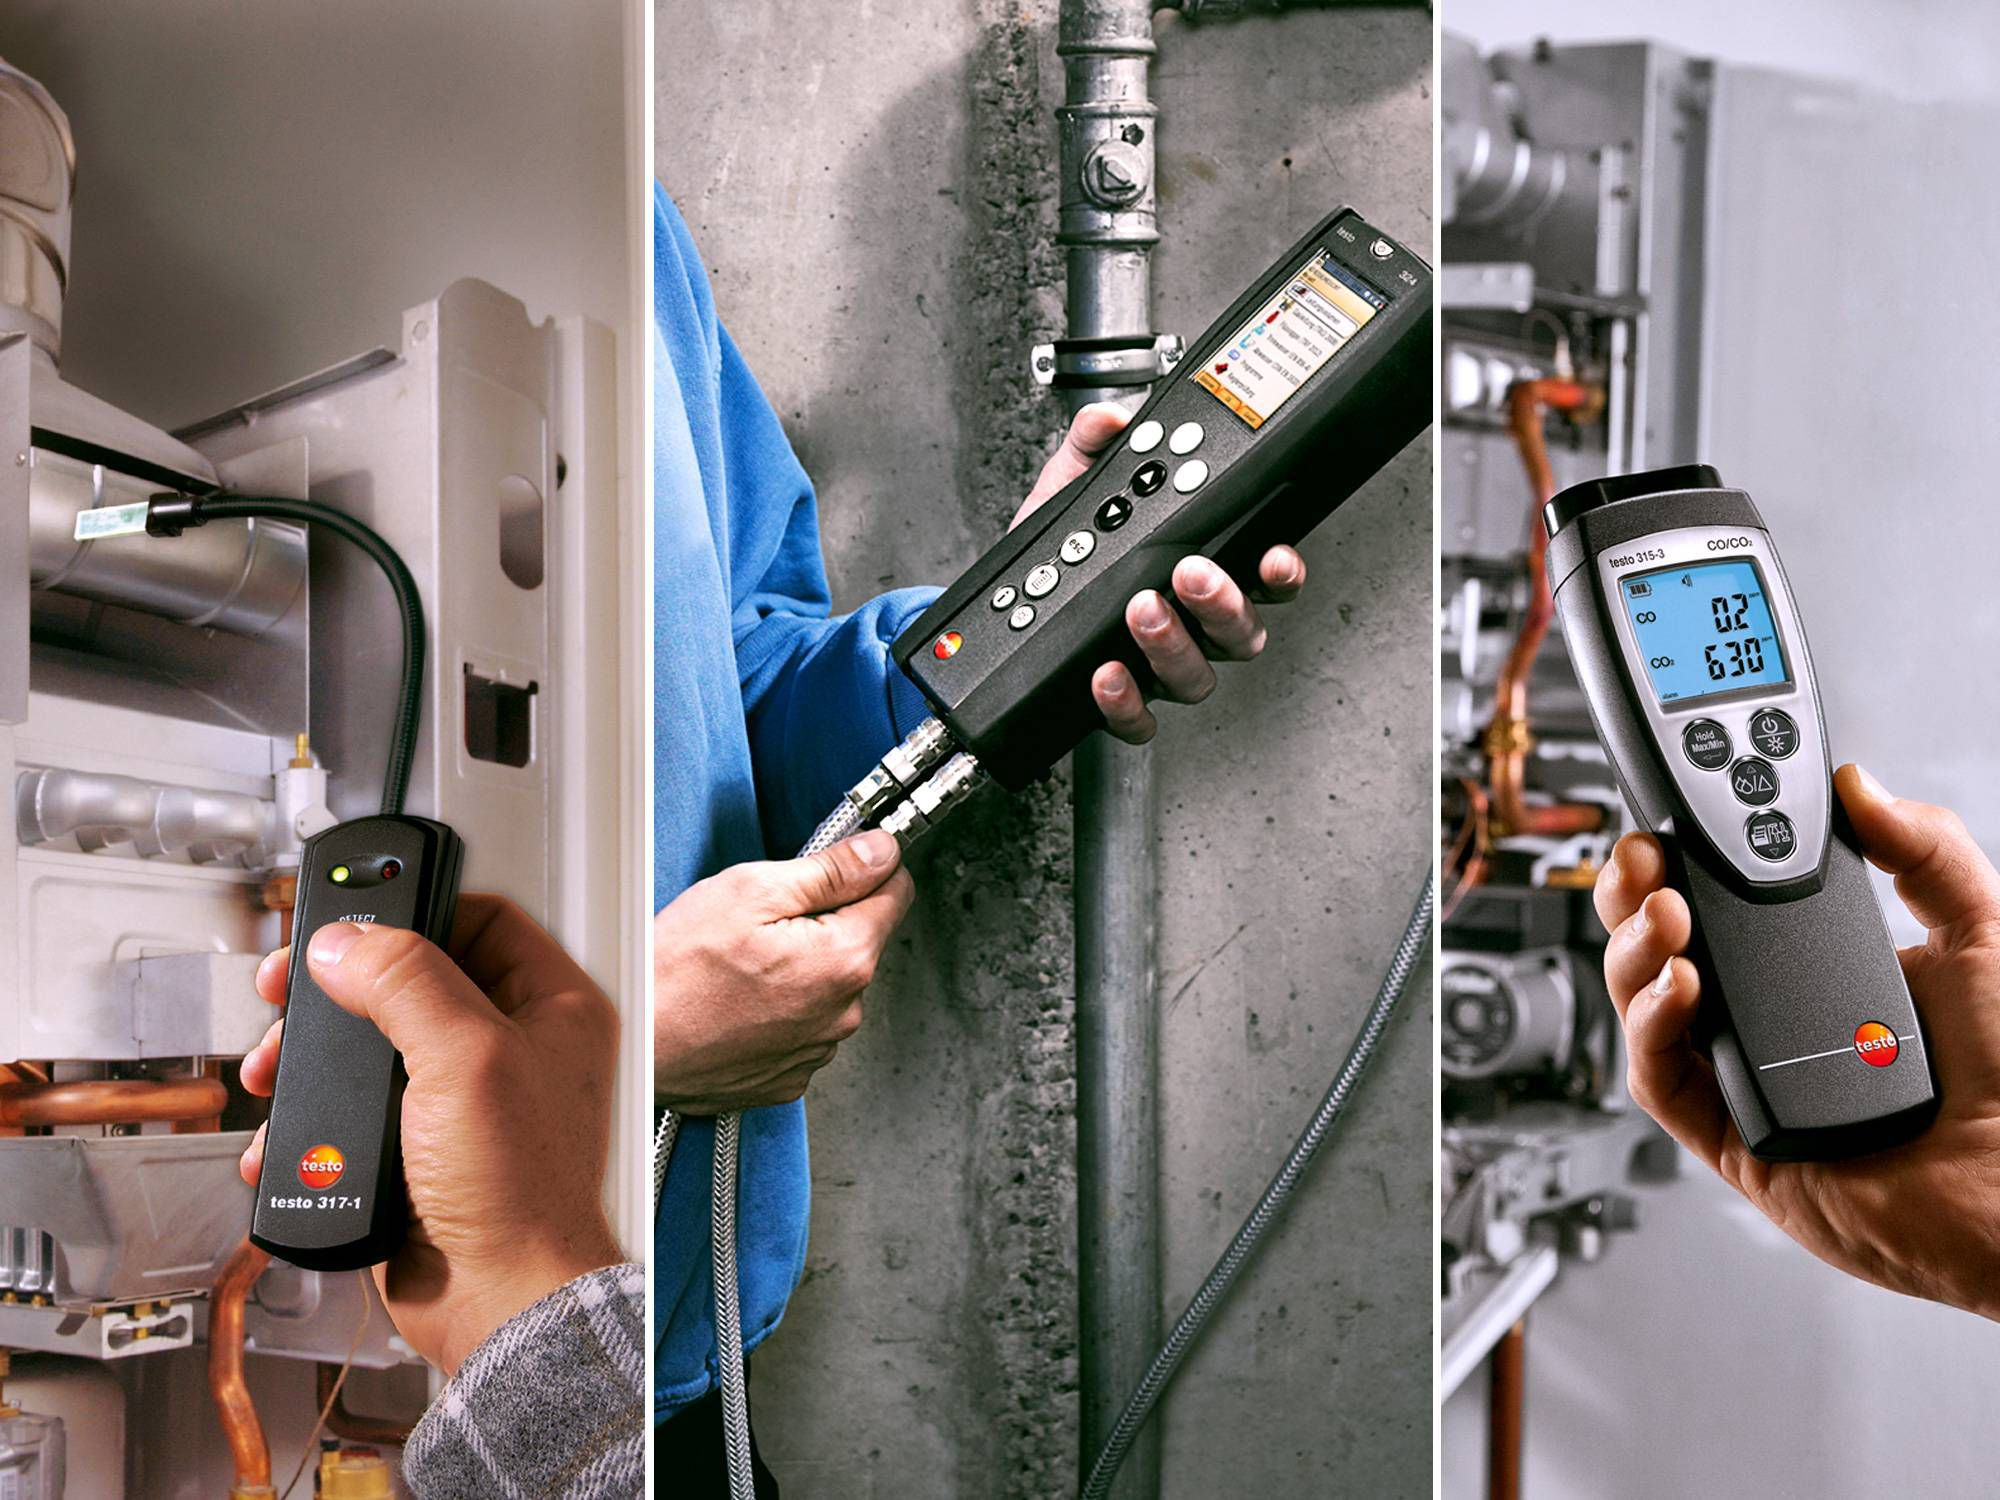 Testo exhaust gas measurement